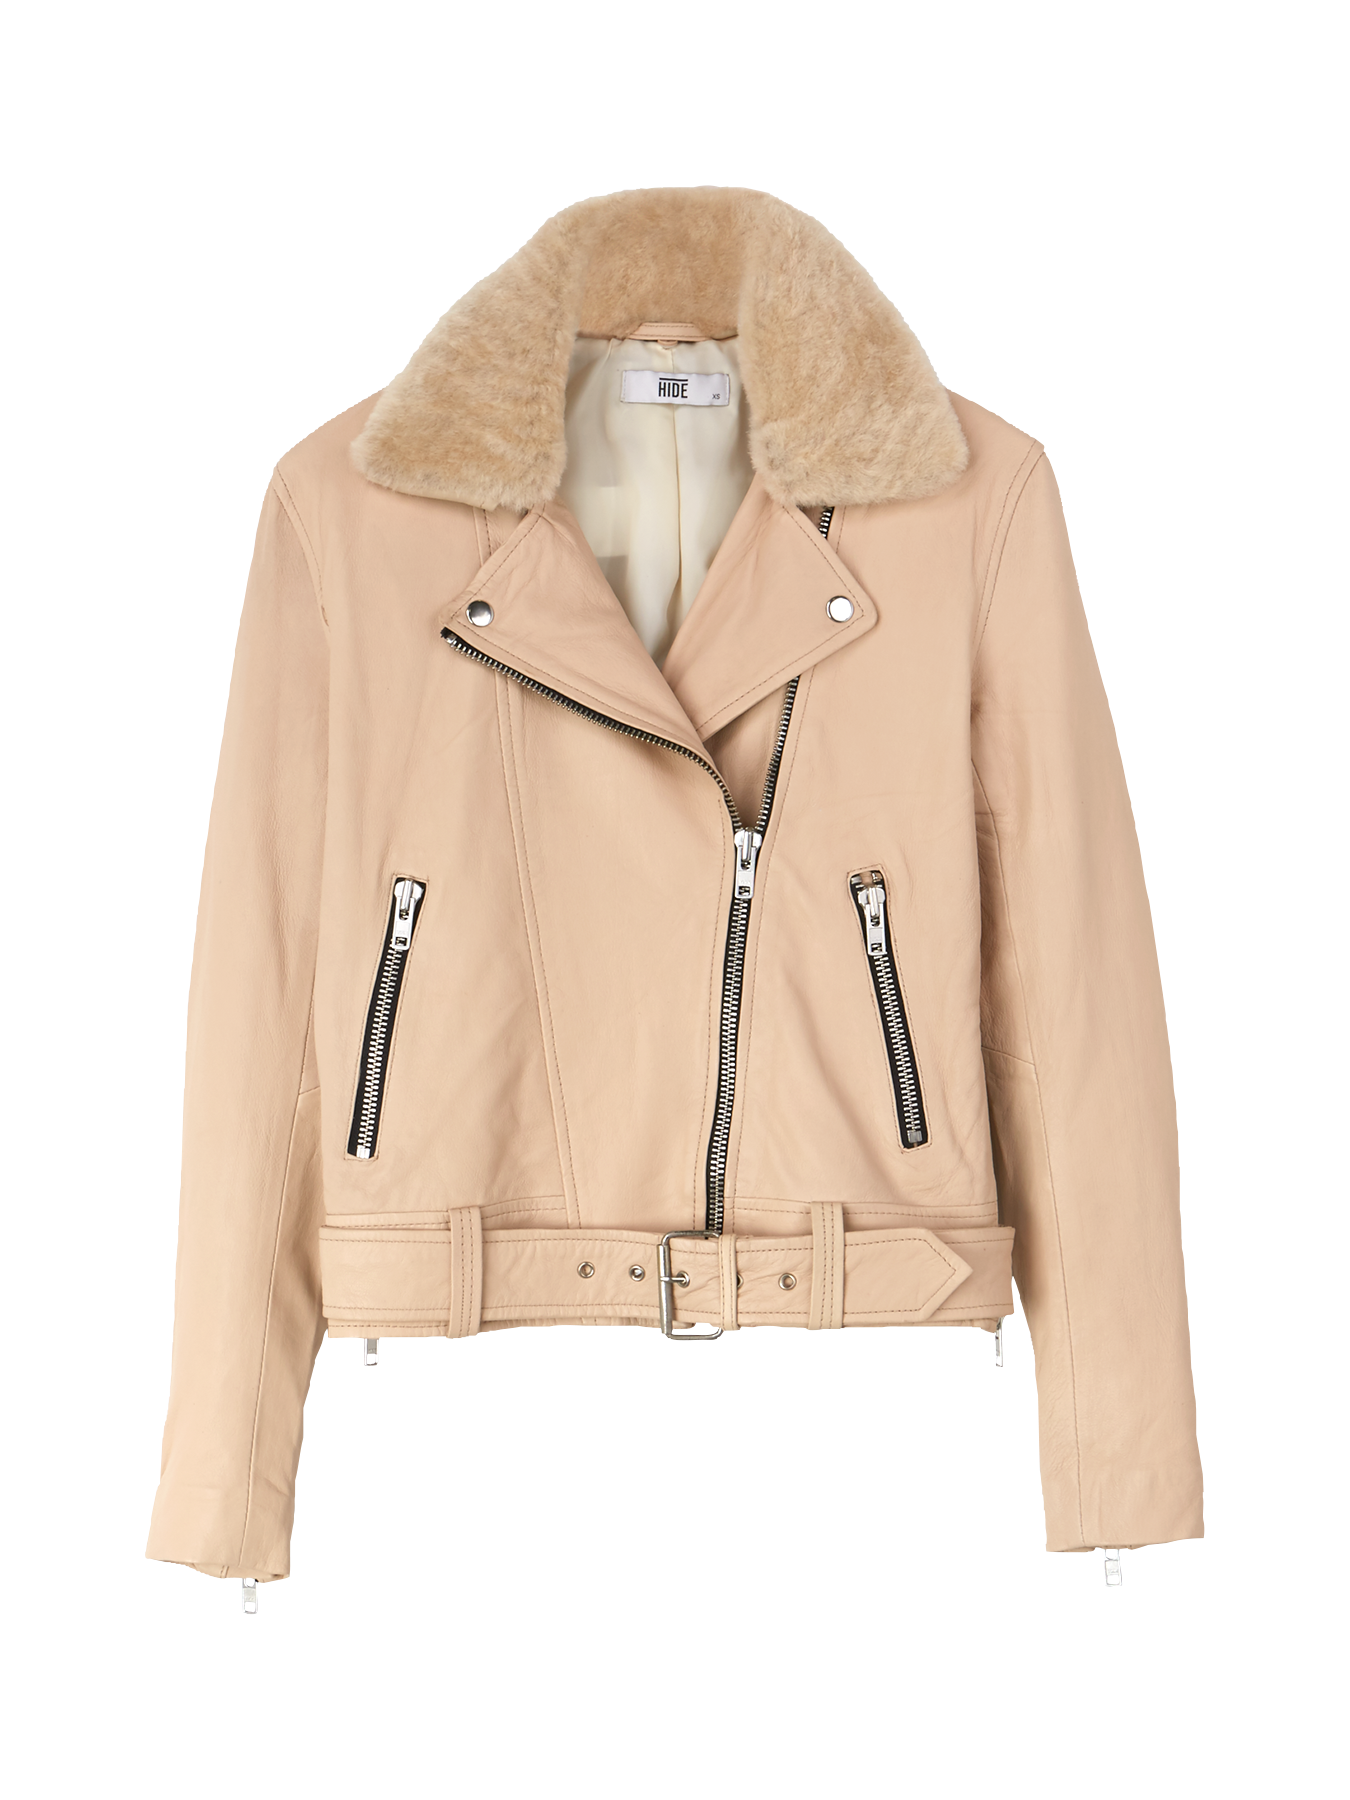 HIDE Rita Shearling Biker Jacket - PeachSize & Fit True to size - take your usual sizeClassic biker shape - boxy with a waist-length cutModel is 5'10